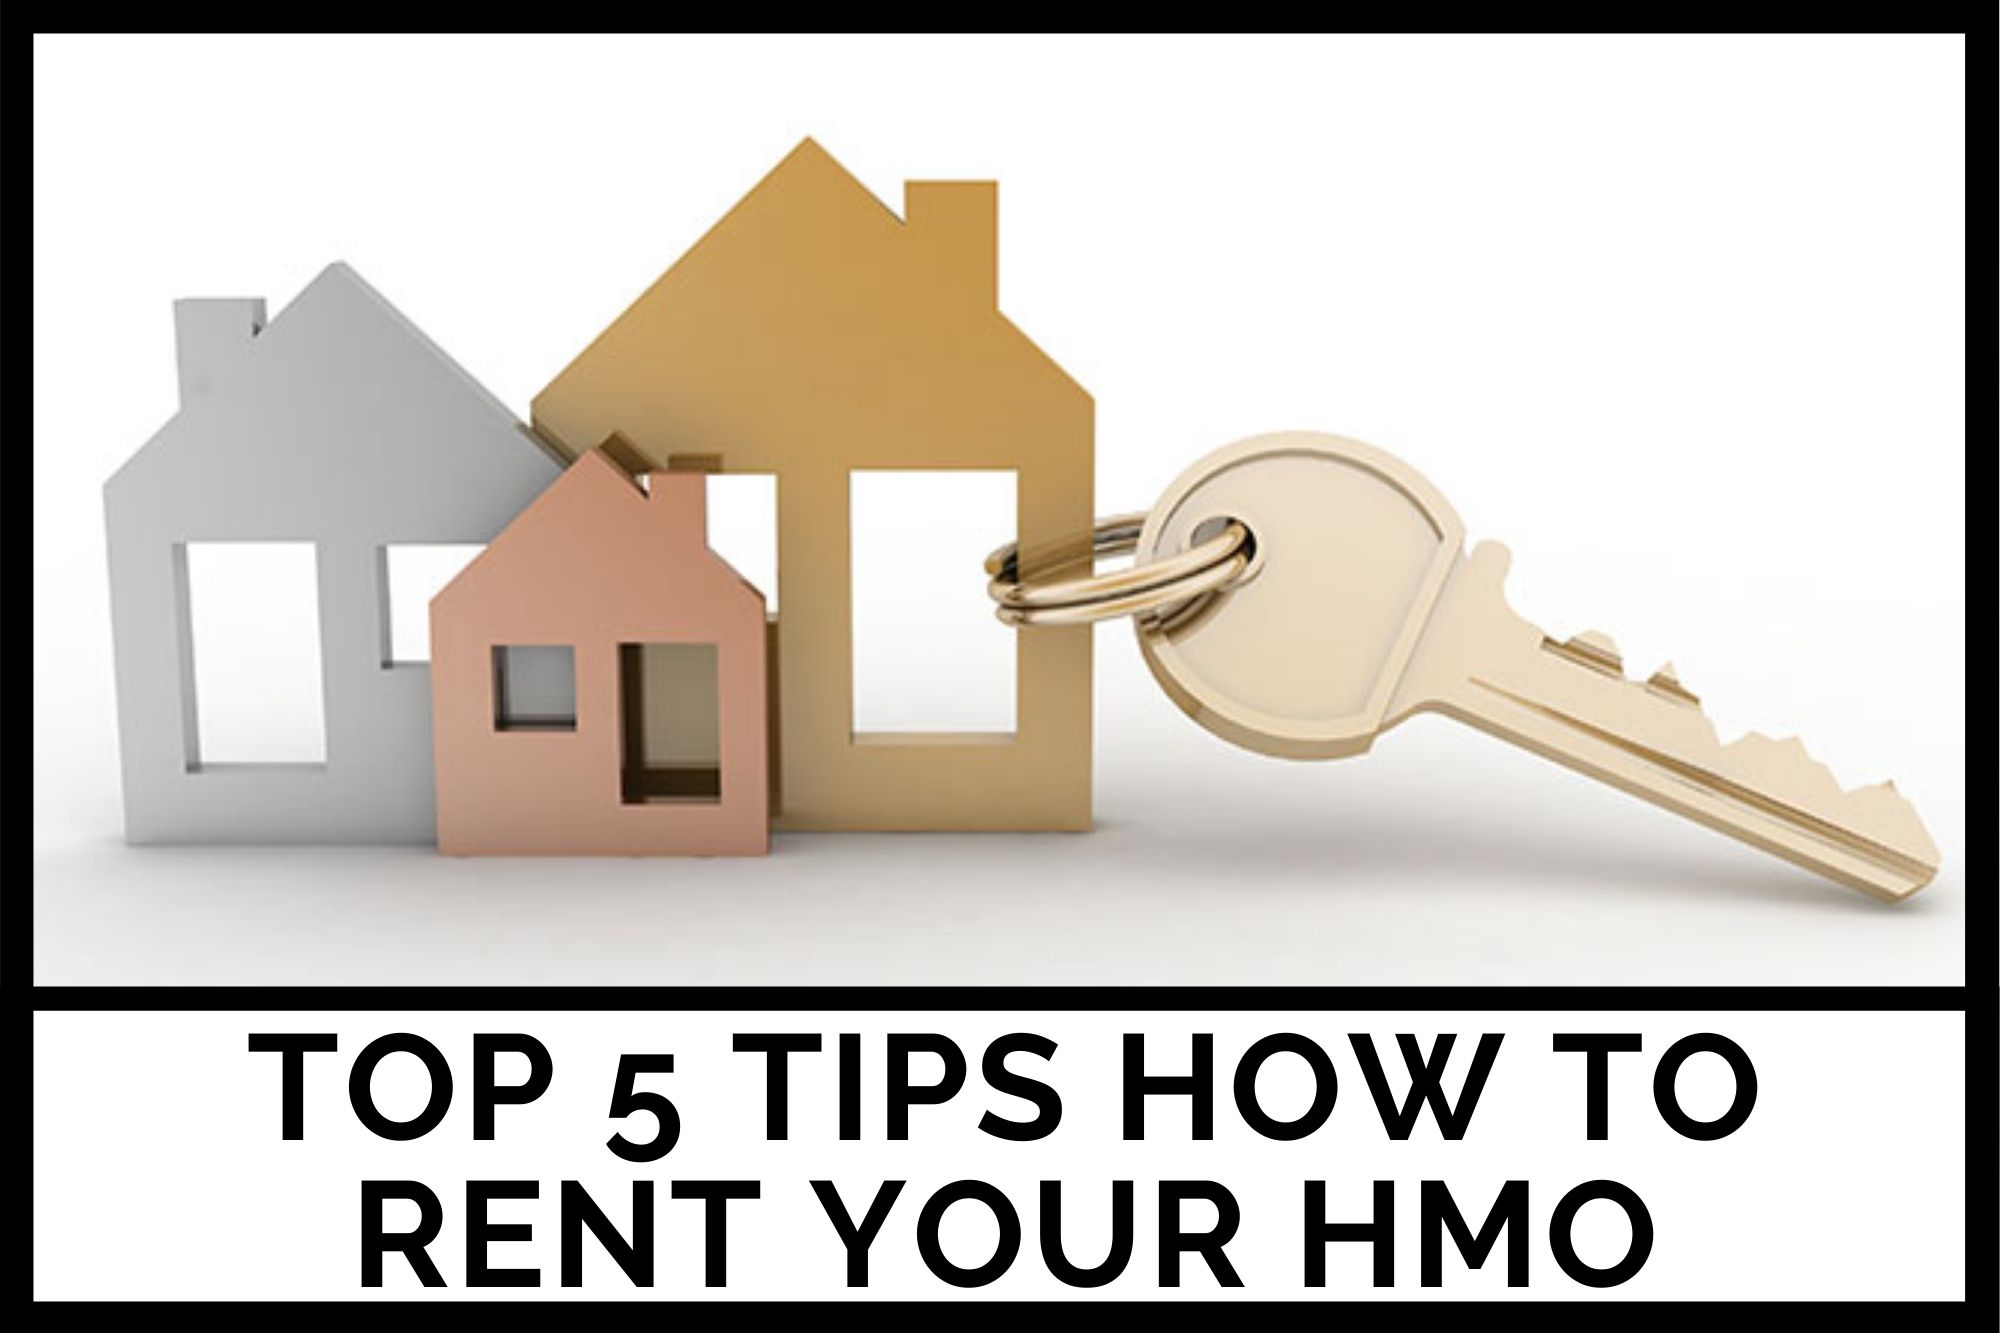 Top 5 Tips How to Rent Your HMO